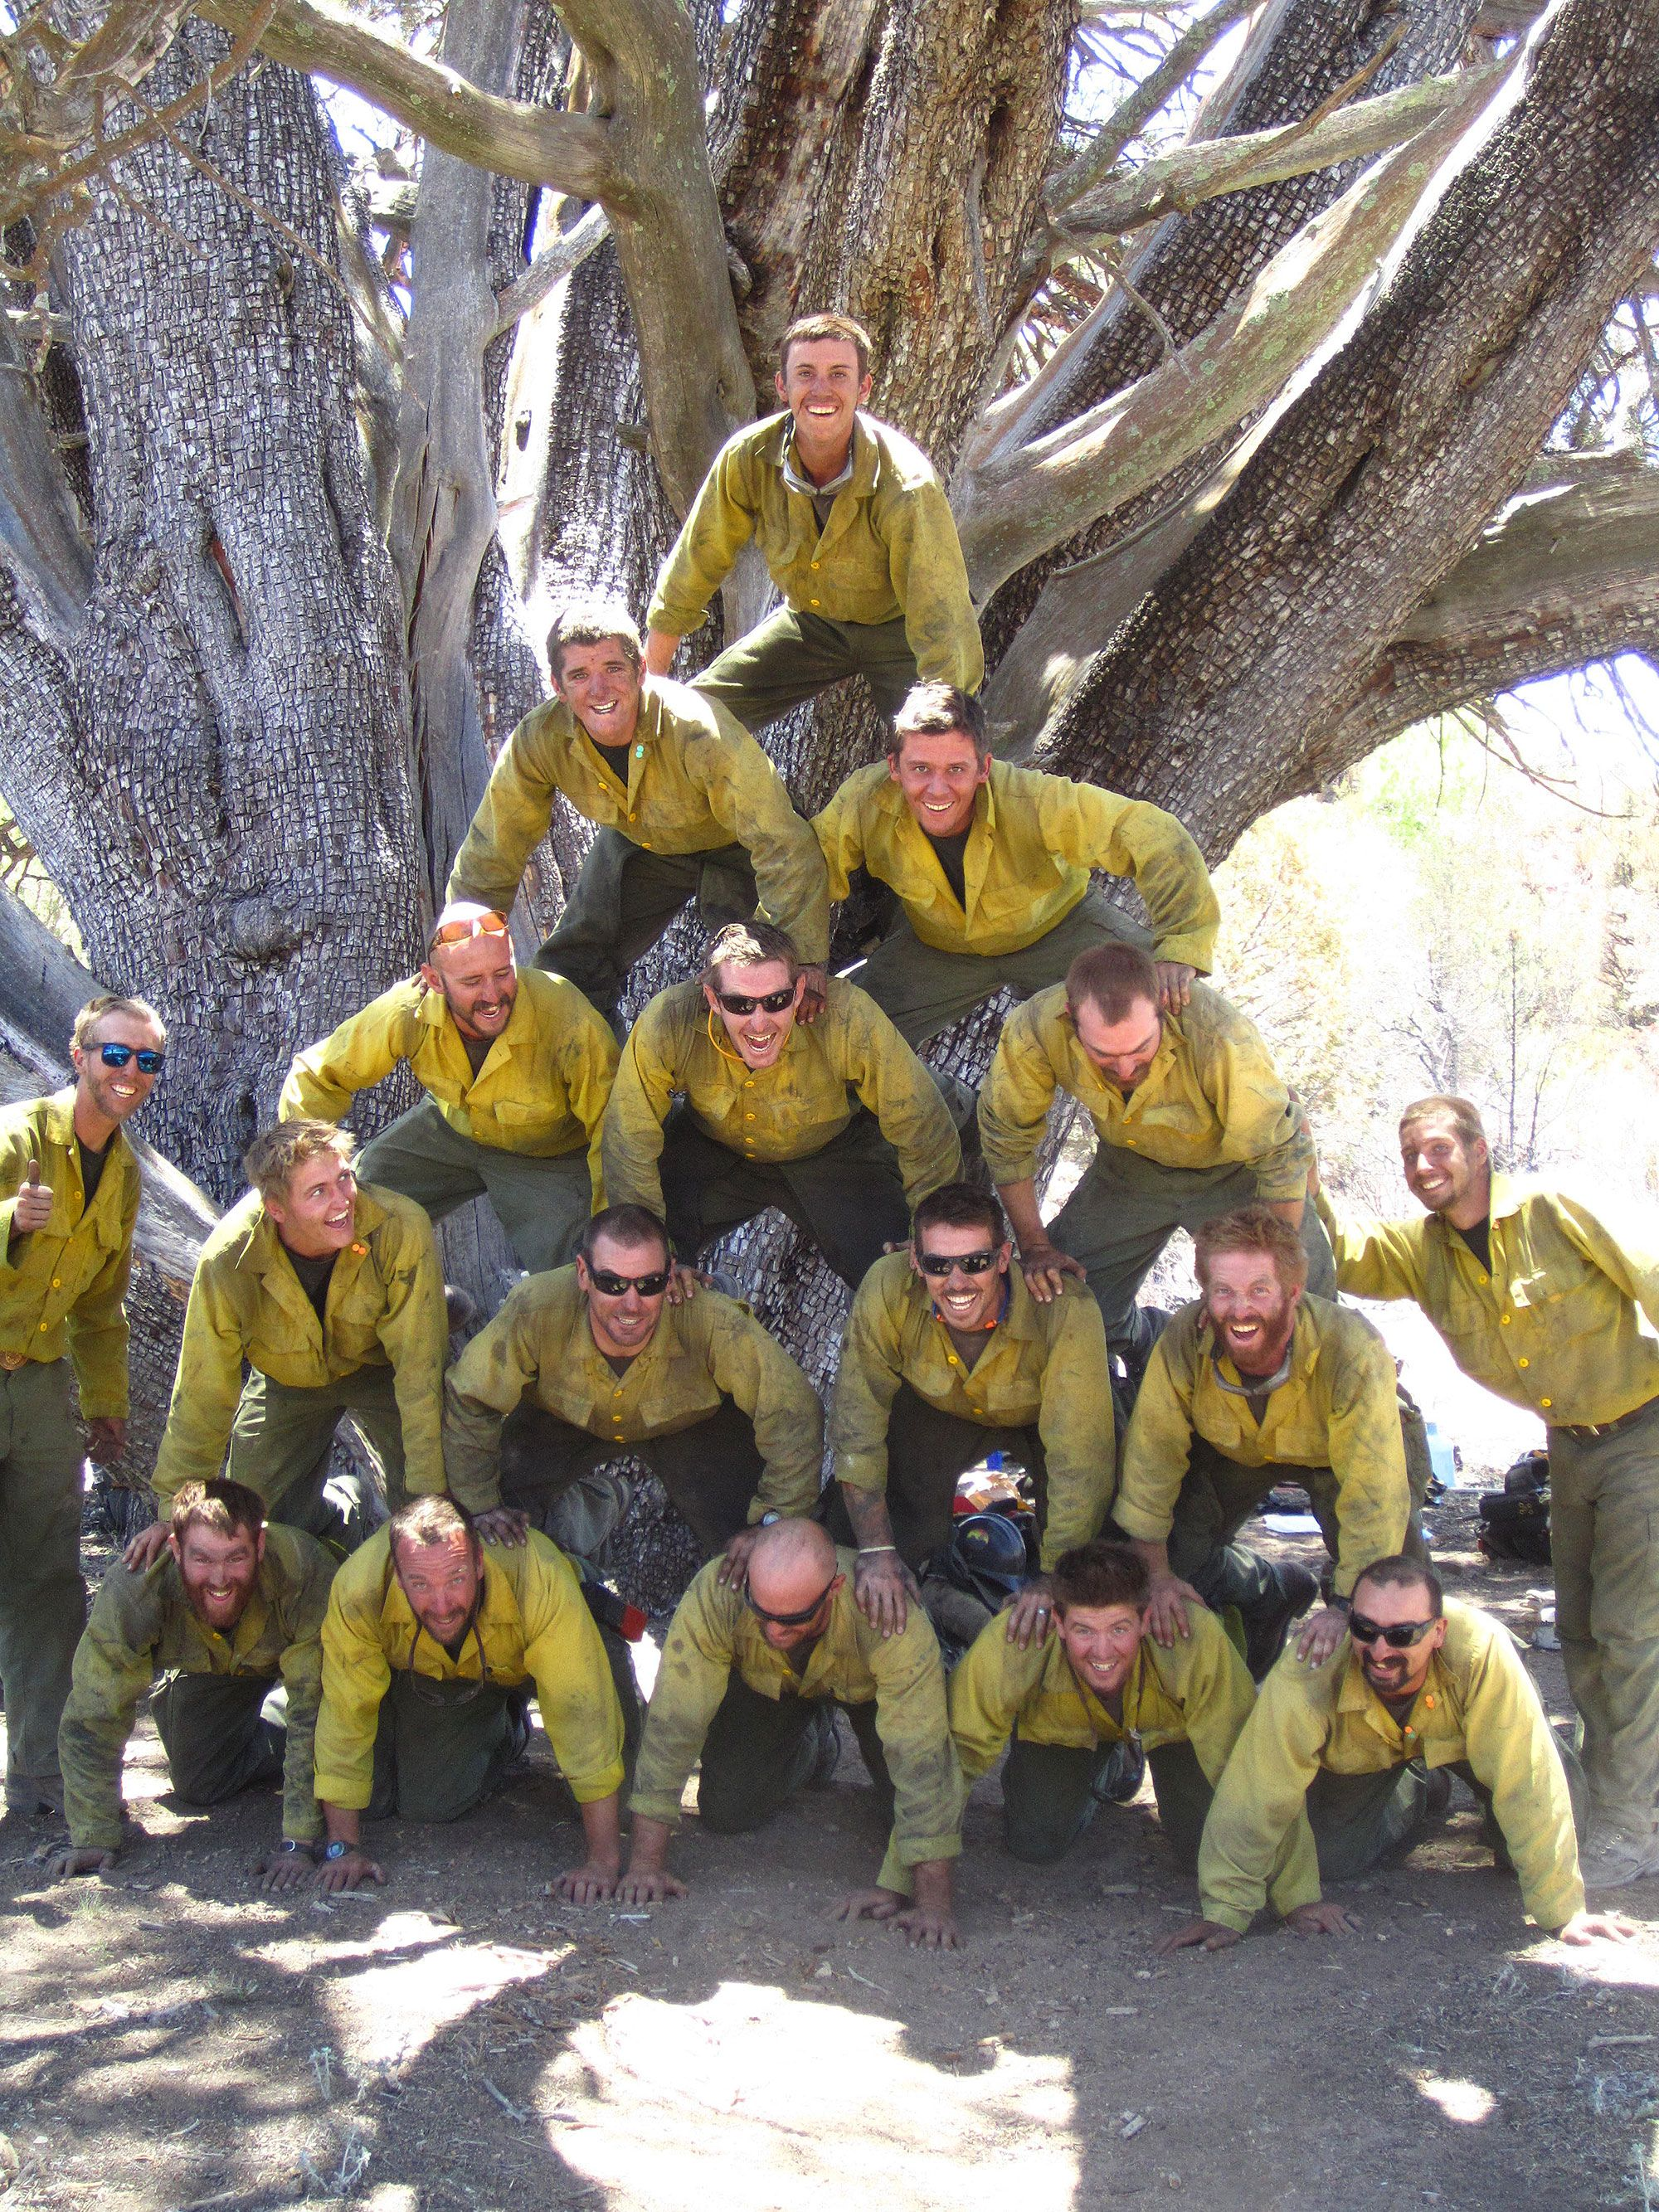 Granite Mountain Hotshots The Real Firefighters From Which Only The Brave Was Created Bomberos Heroe Consejos De Supervivencia